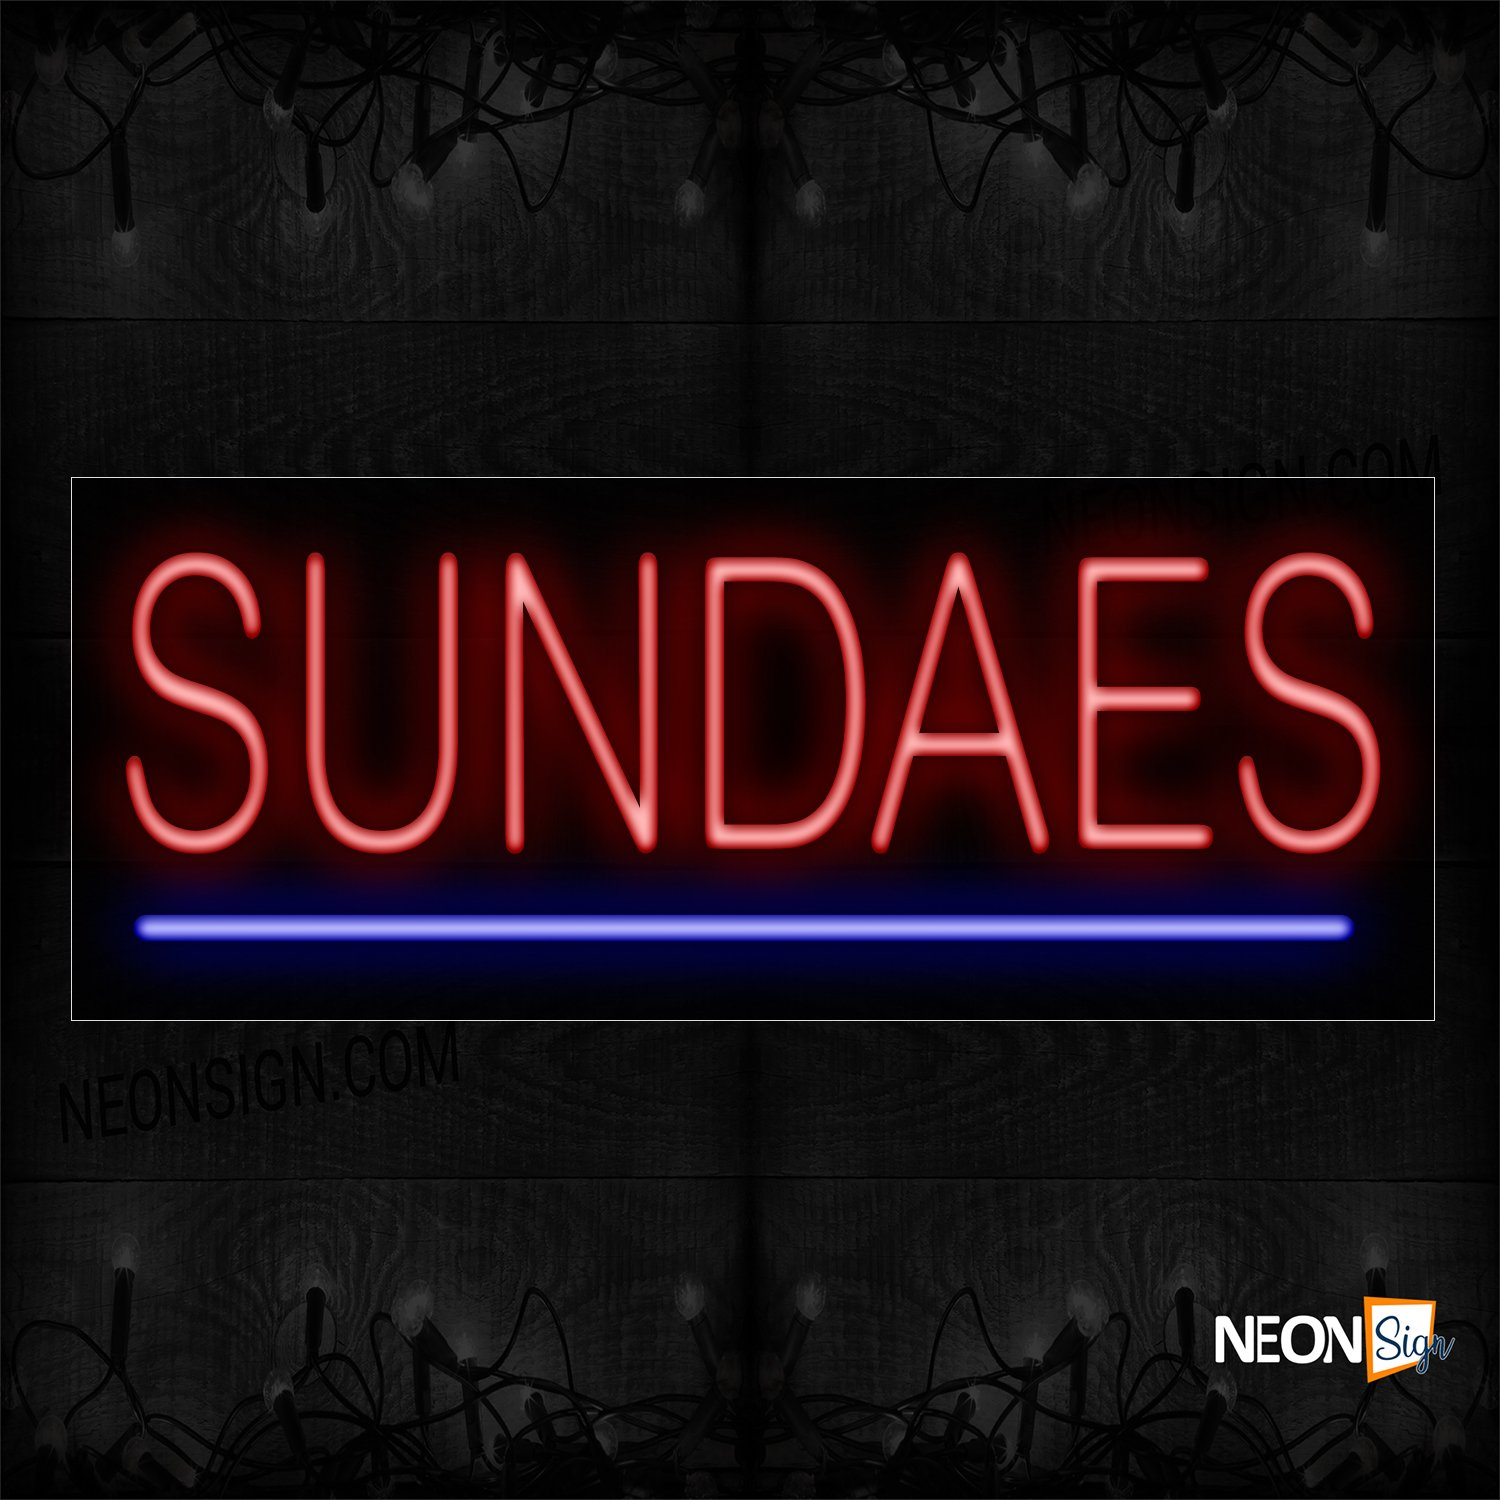 Image of 12398 Sundaes With Underline Neon Sign_13x32 Black Backing